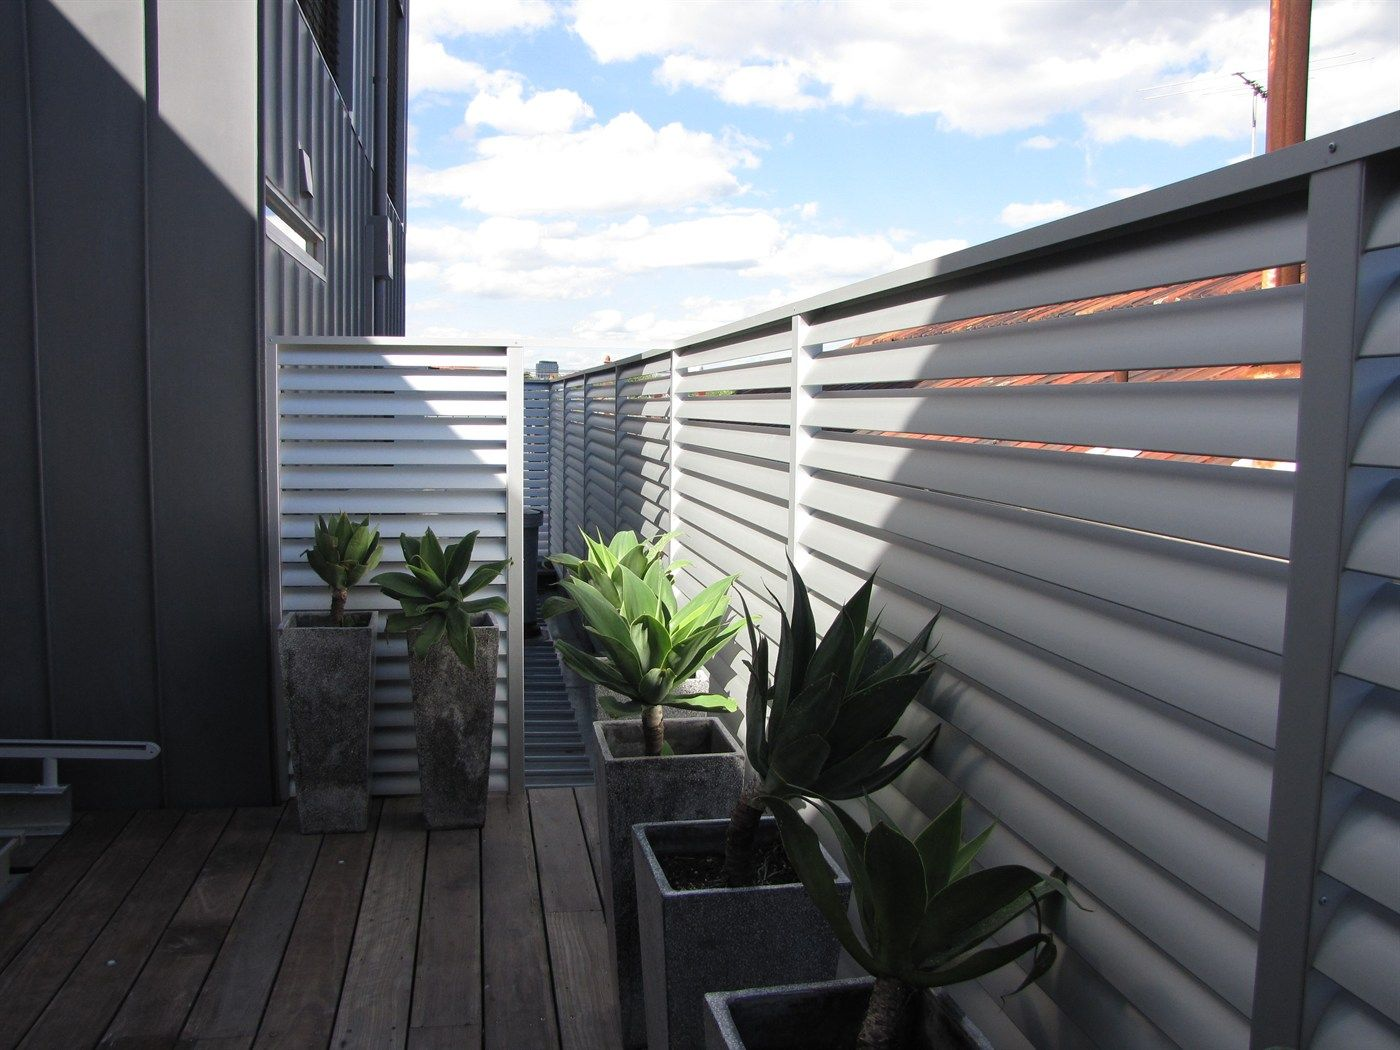 Superior Louvre Blade Balcony Screening Available In Natural Anodized Or Your Choice  Of Colour